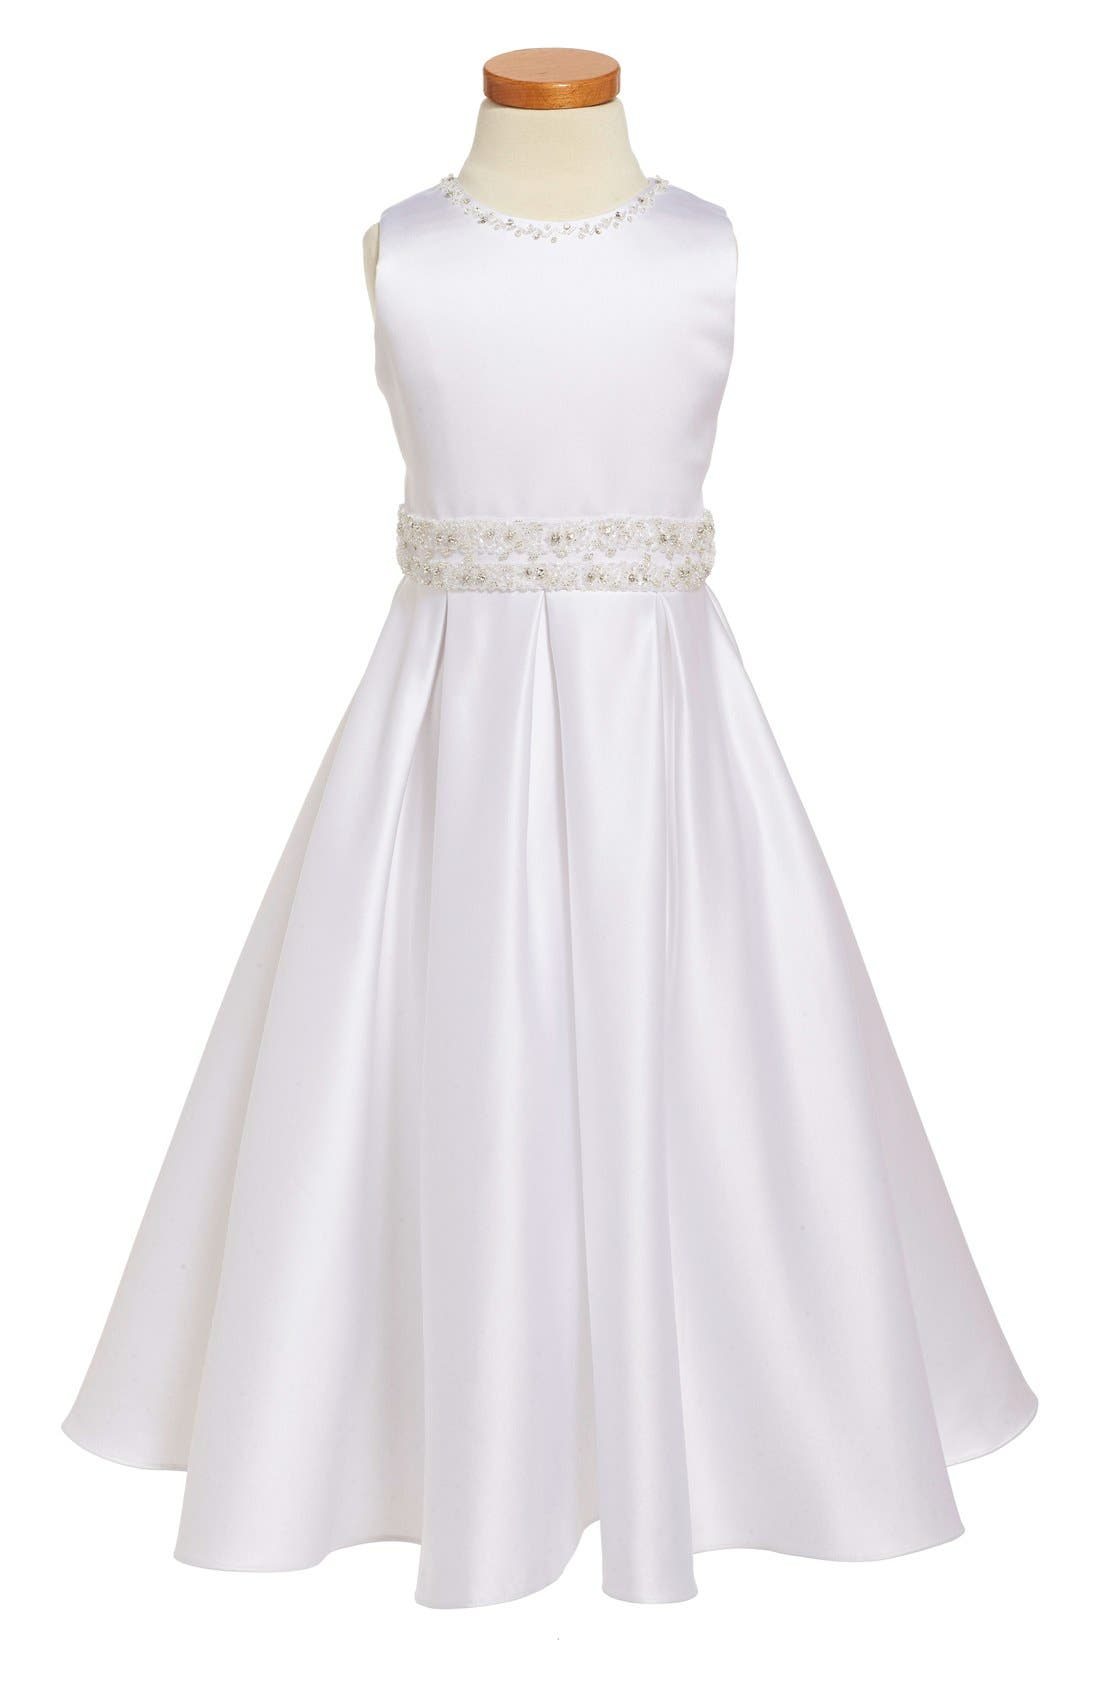 JOAN CALABRESE FOR MON CHERI Satin First Communion Dress, Main, color, 100